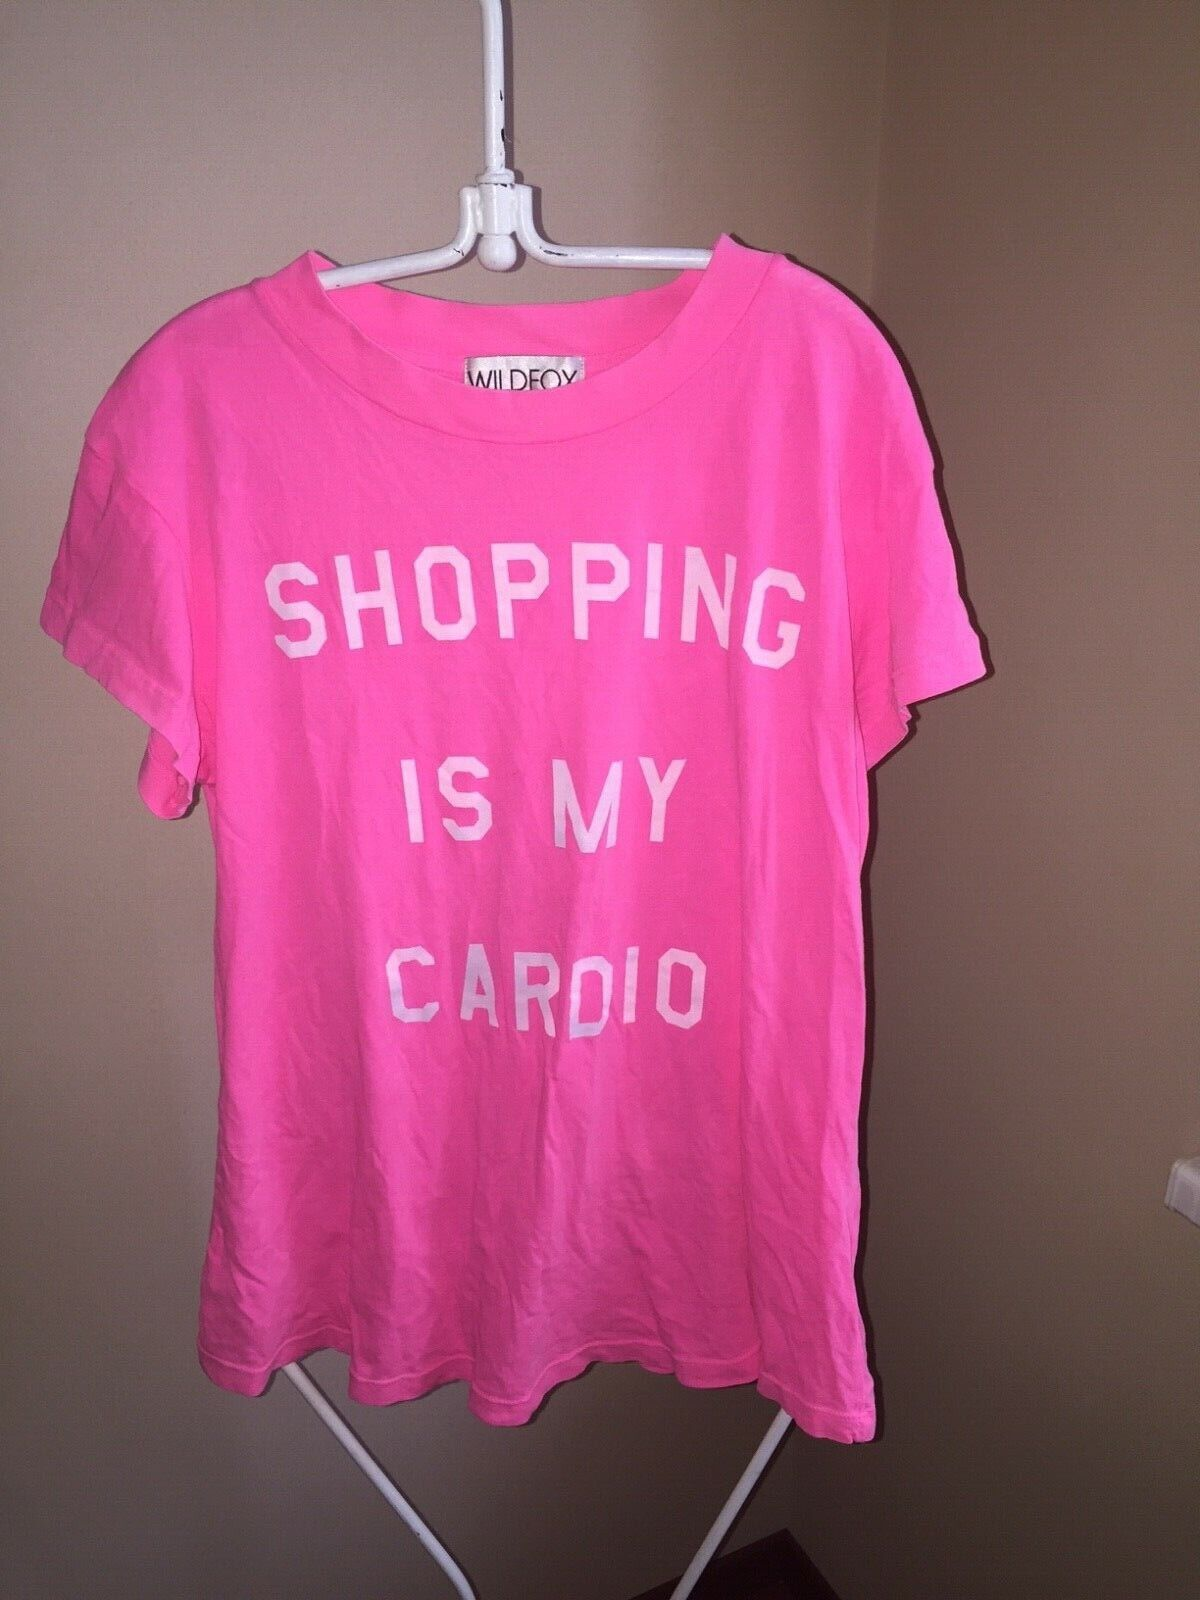 WILDFOX Famous Shopping Is My Cardio Neon Rosa T-Shirt MUST HAVE FOR FASHIONISTA